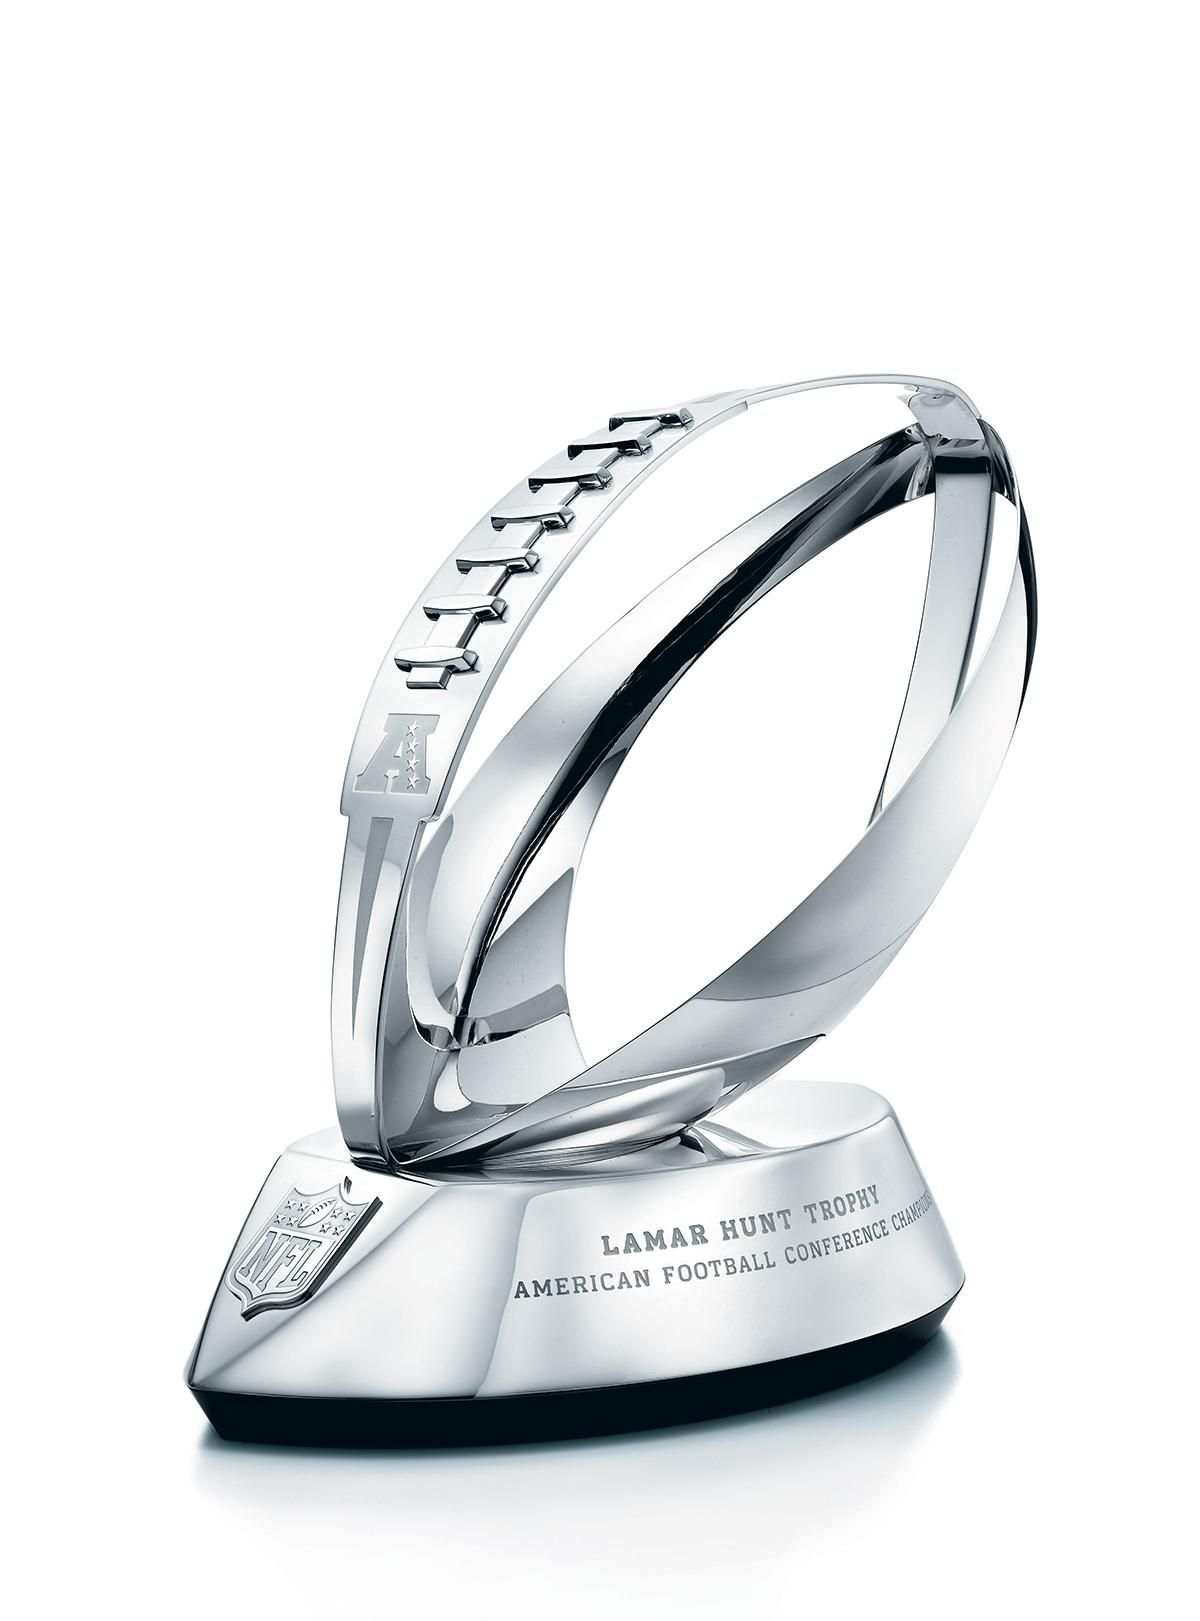 Tiffany & Co. proudly crafted the Lamar Hunt trophy